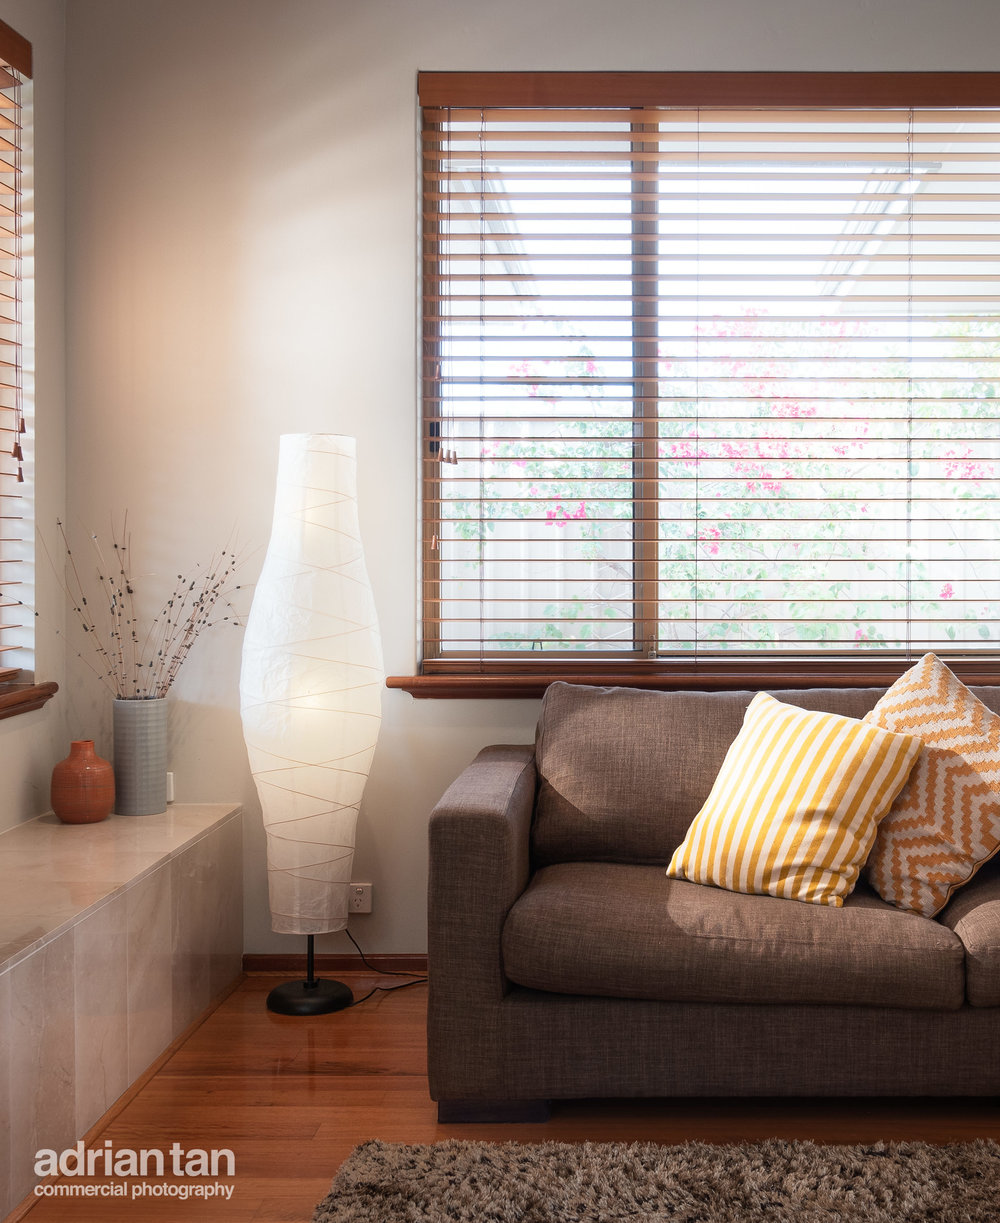 Living Room Final - Adrian Tan Photography - Perth Architectural, Interior Design, High End Real Estate Photographer